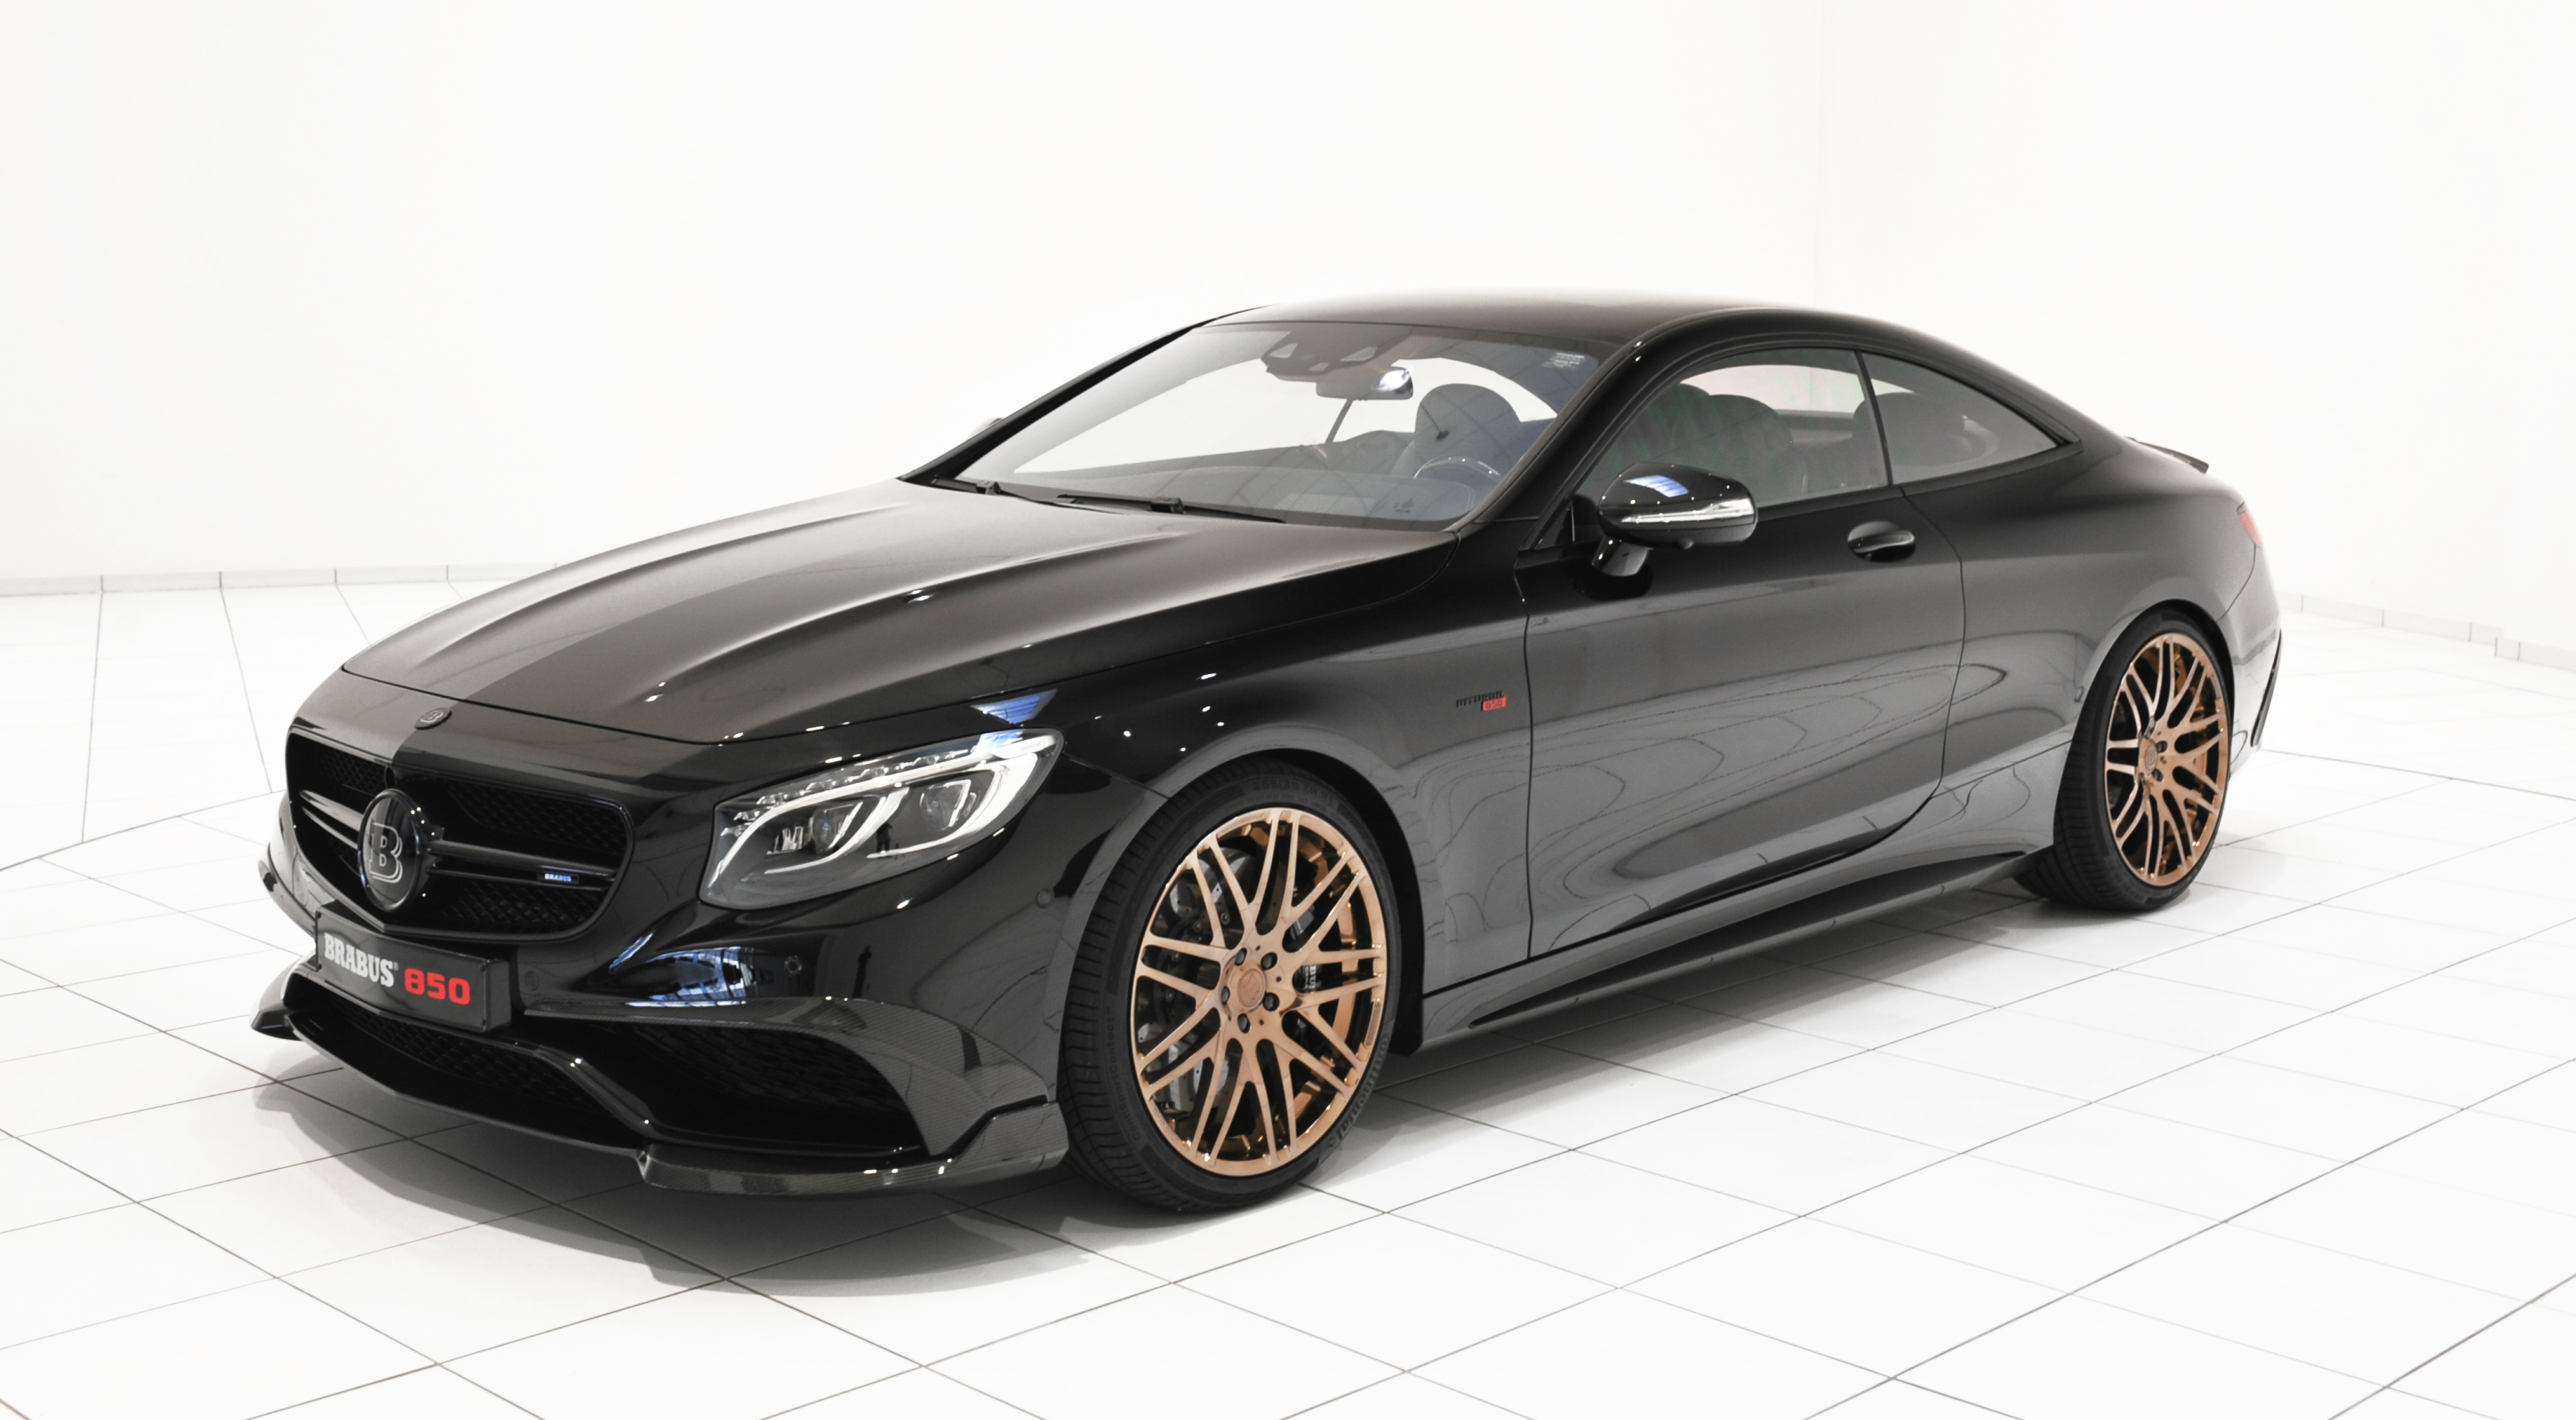 brabus 850 6 0 biturbo coupe mercedes s 63 amg coupe with 850 hp 1 450 nm and 350 km h top